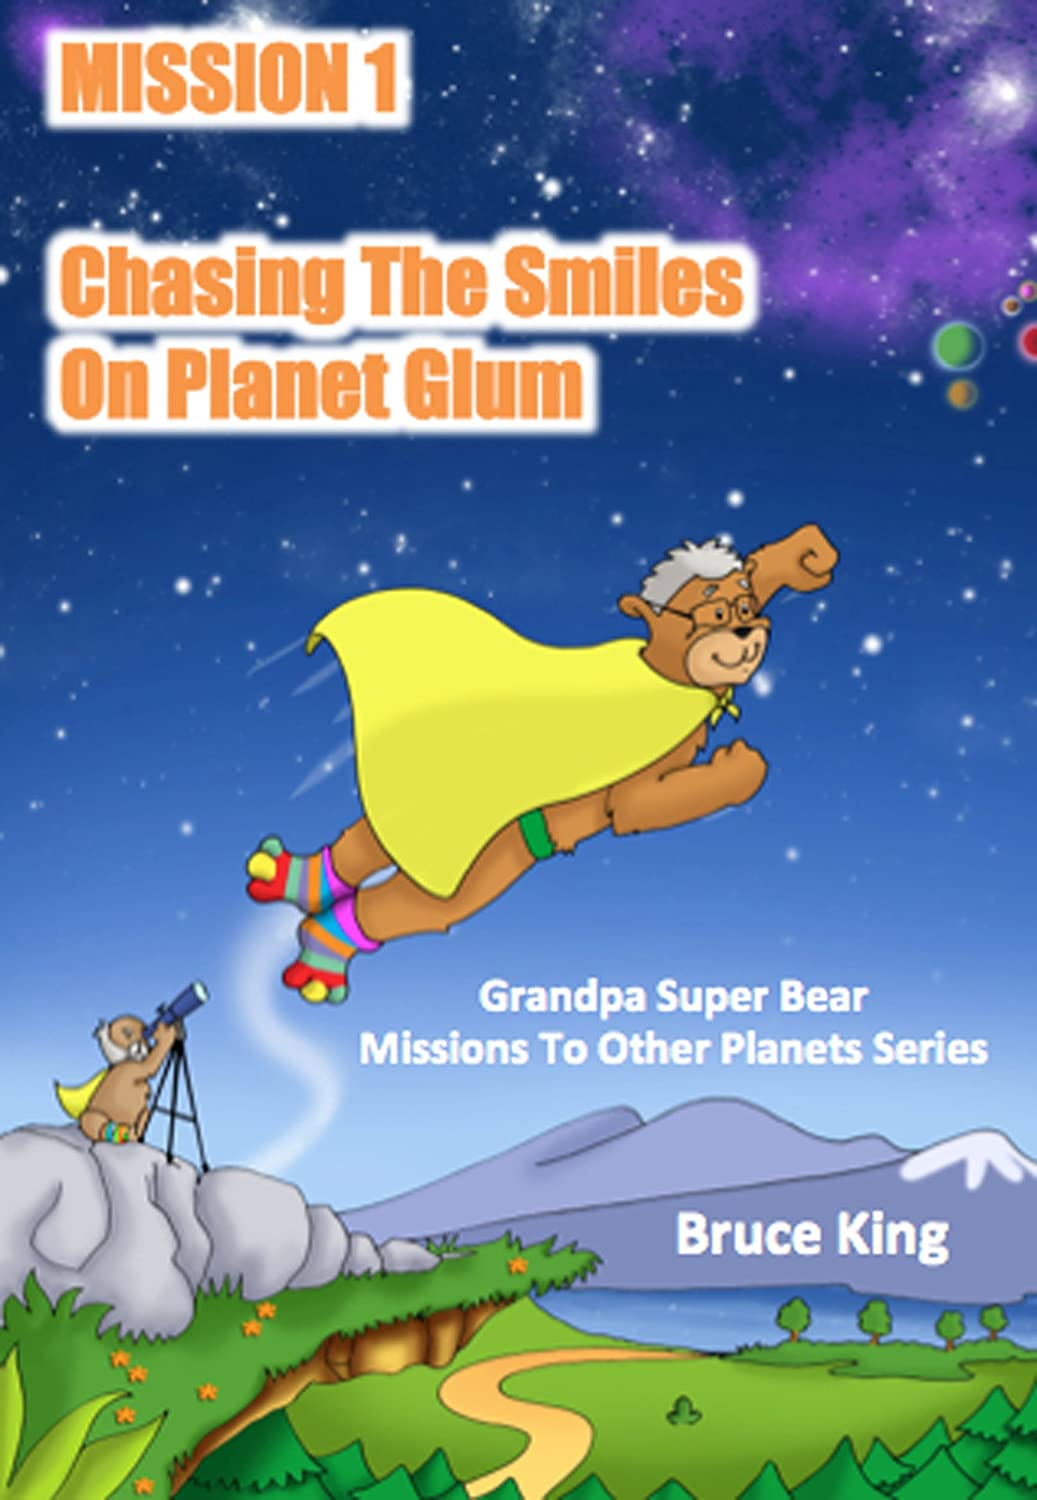 Mission 1 - Chasing The Smiles On Planet Glum (Grandpa Super Bear Missions To Other Planets Series)